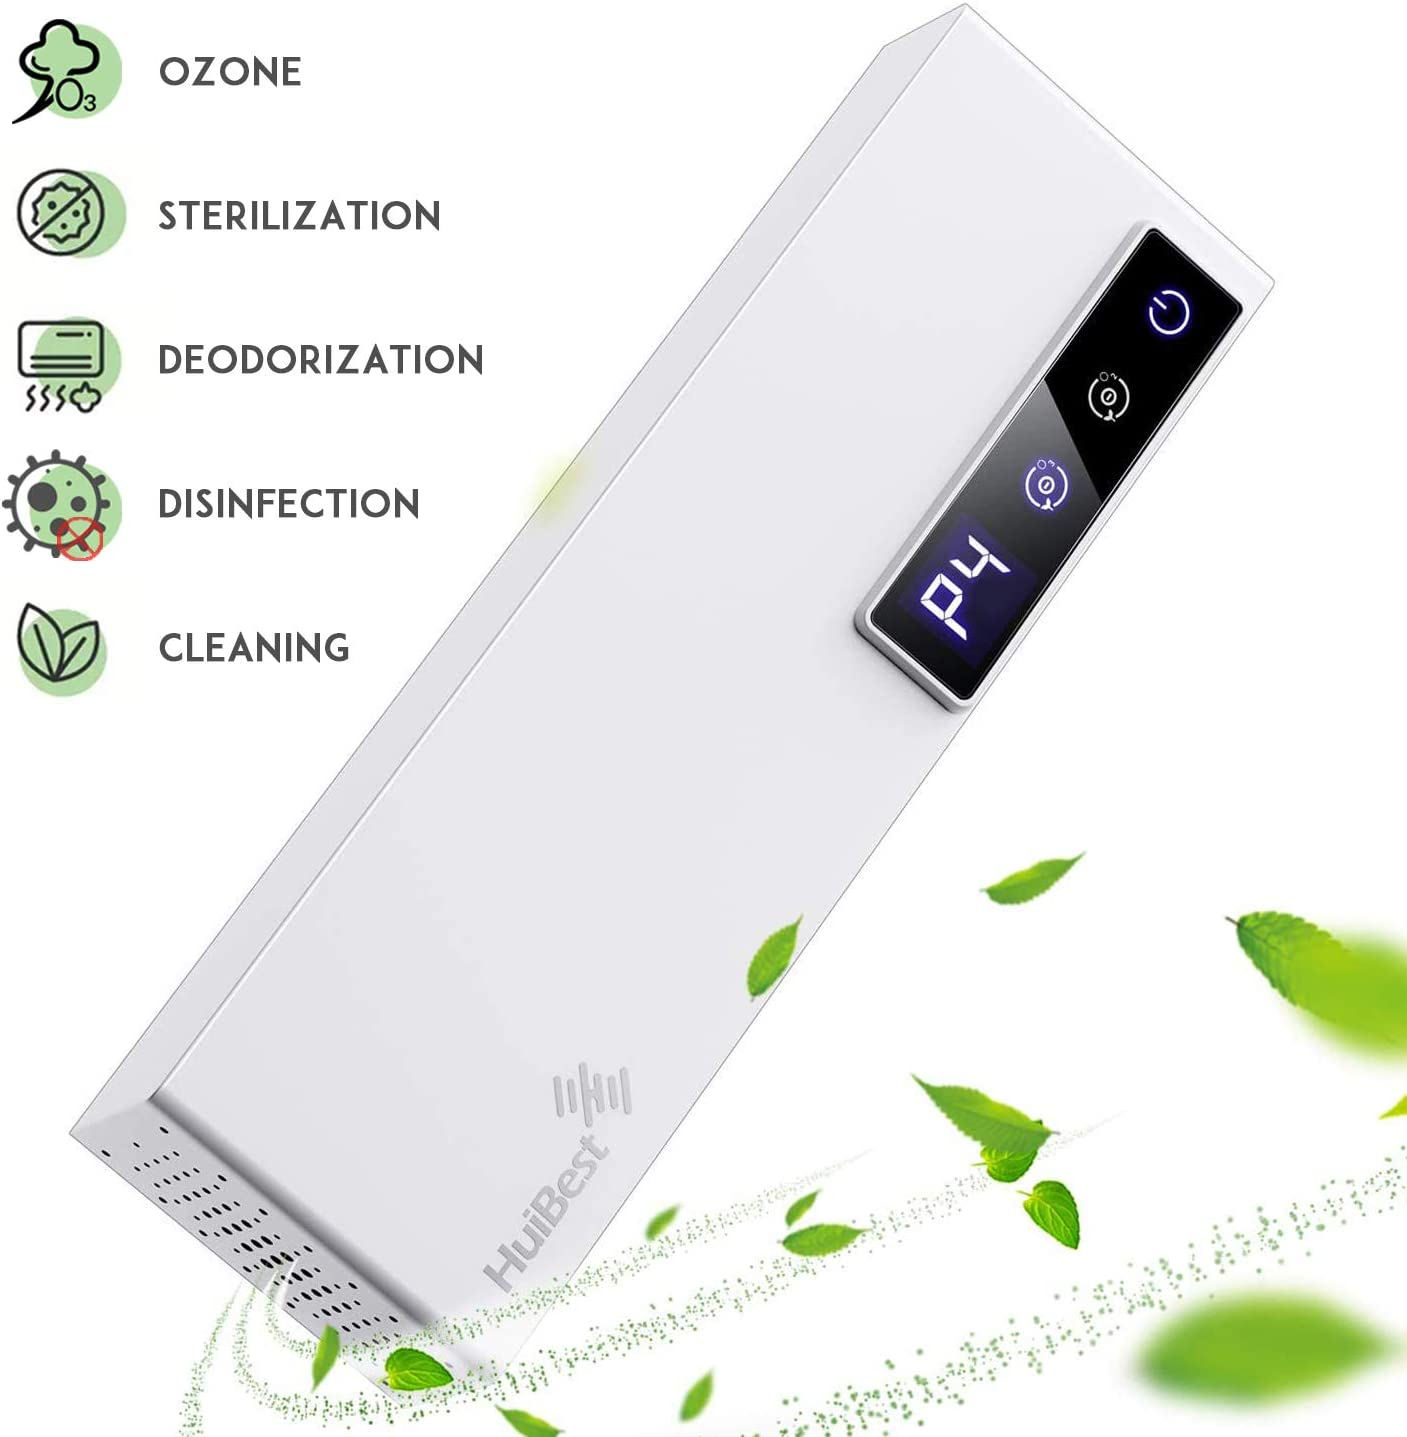 HUIBEST 2020 Newest Ozone Generator Air Purifier, Air Purifier for Home, Ozone Machine Air Ionizer Fresheners Deodorization, Mini USB Air Cleaner for Odors Eliminating, Hotel, Room, Kitchen, Pets&Cars